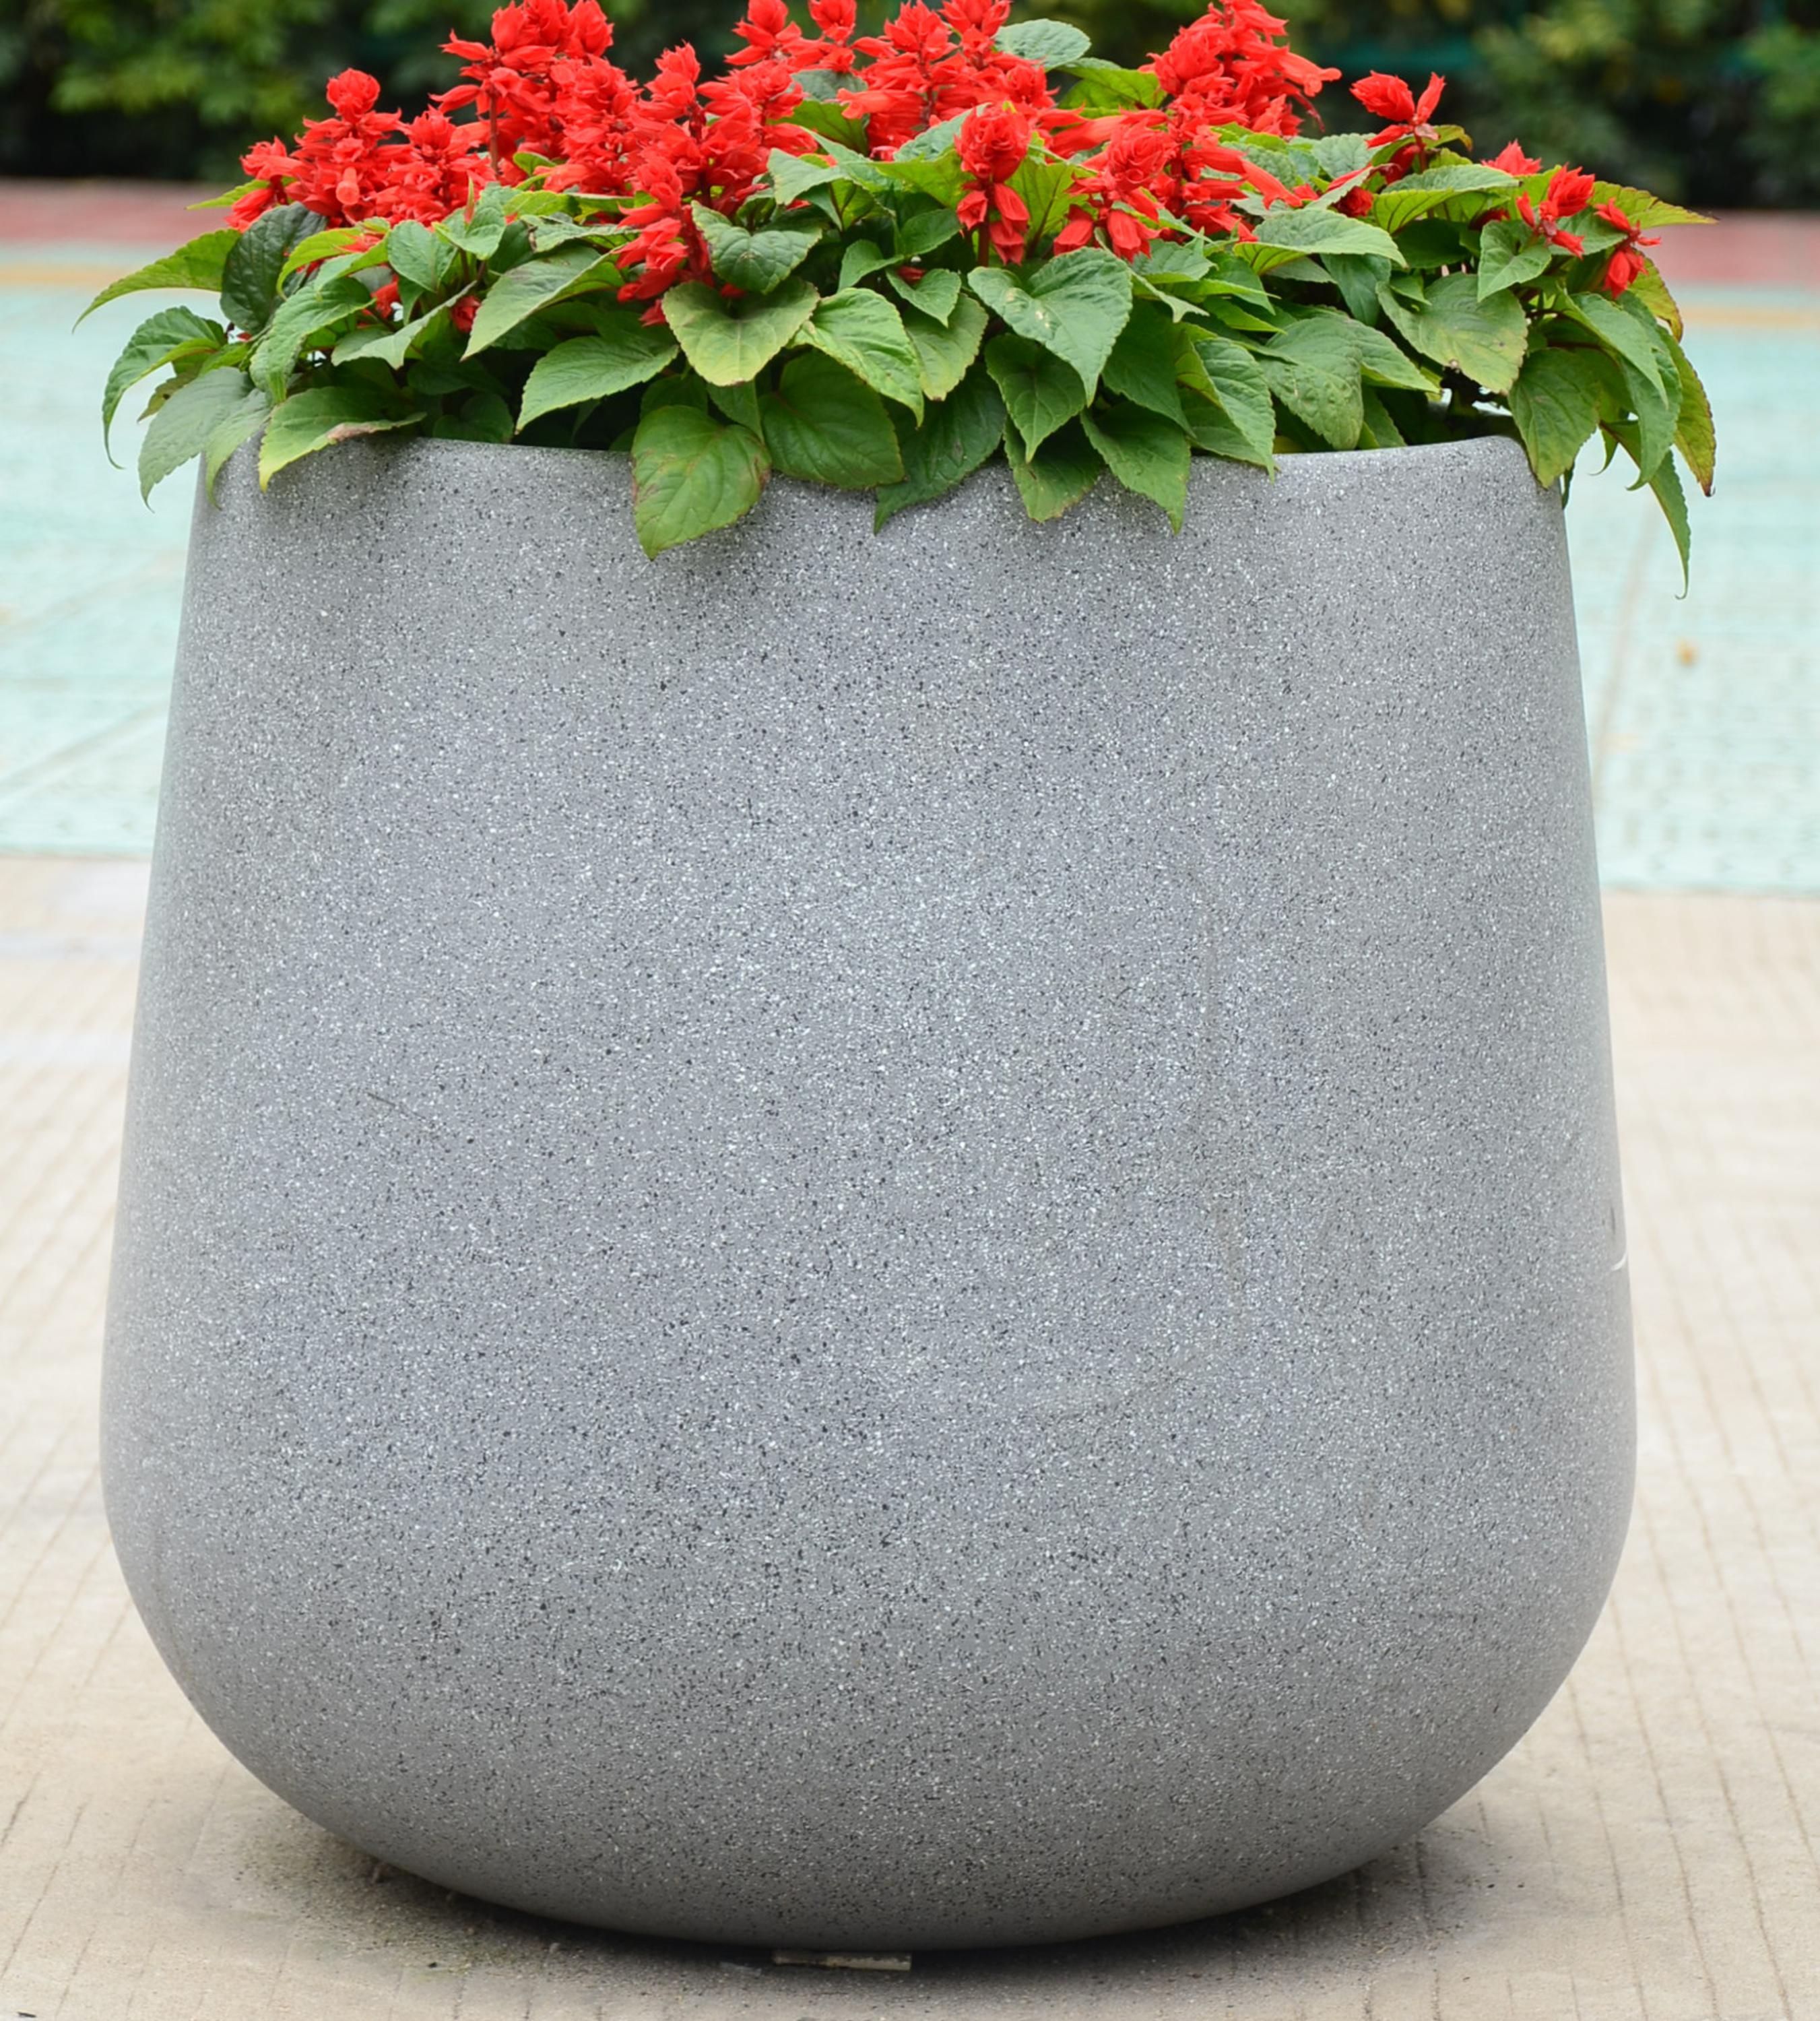 big flower pots cheap flower pots chinese flower pots - buy big